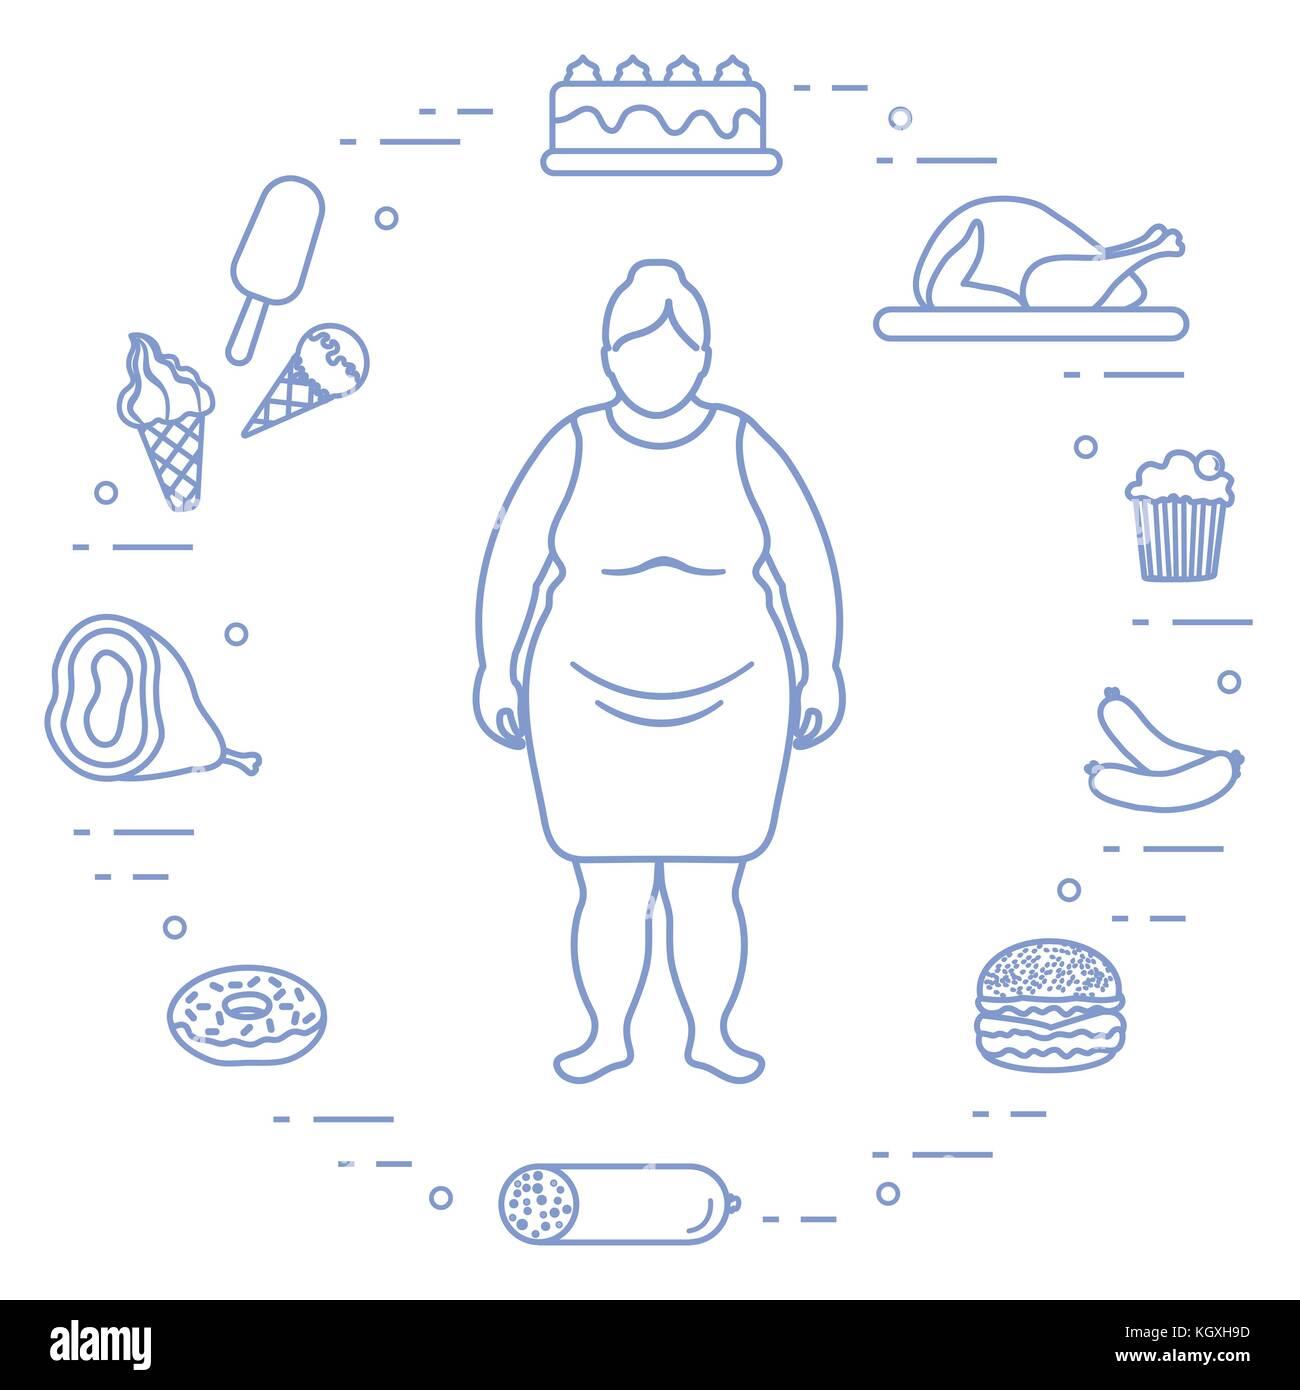 hight resolution of fat woman with unhealthy lifestyle symbols around her harmful eating habits design for banner and print